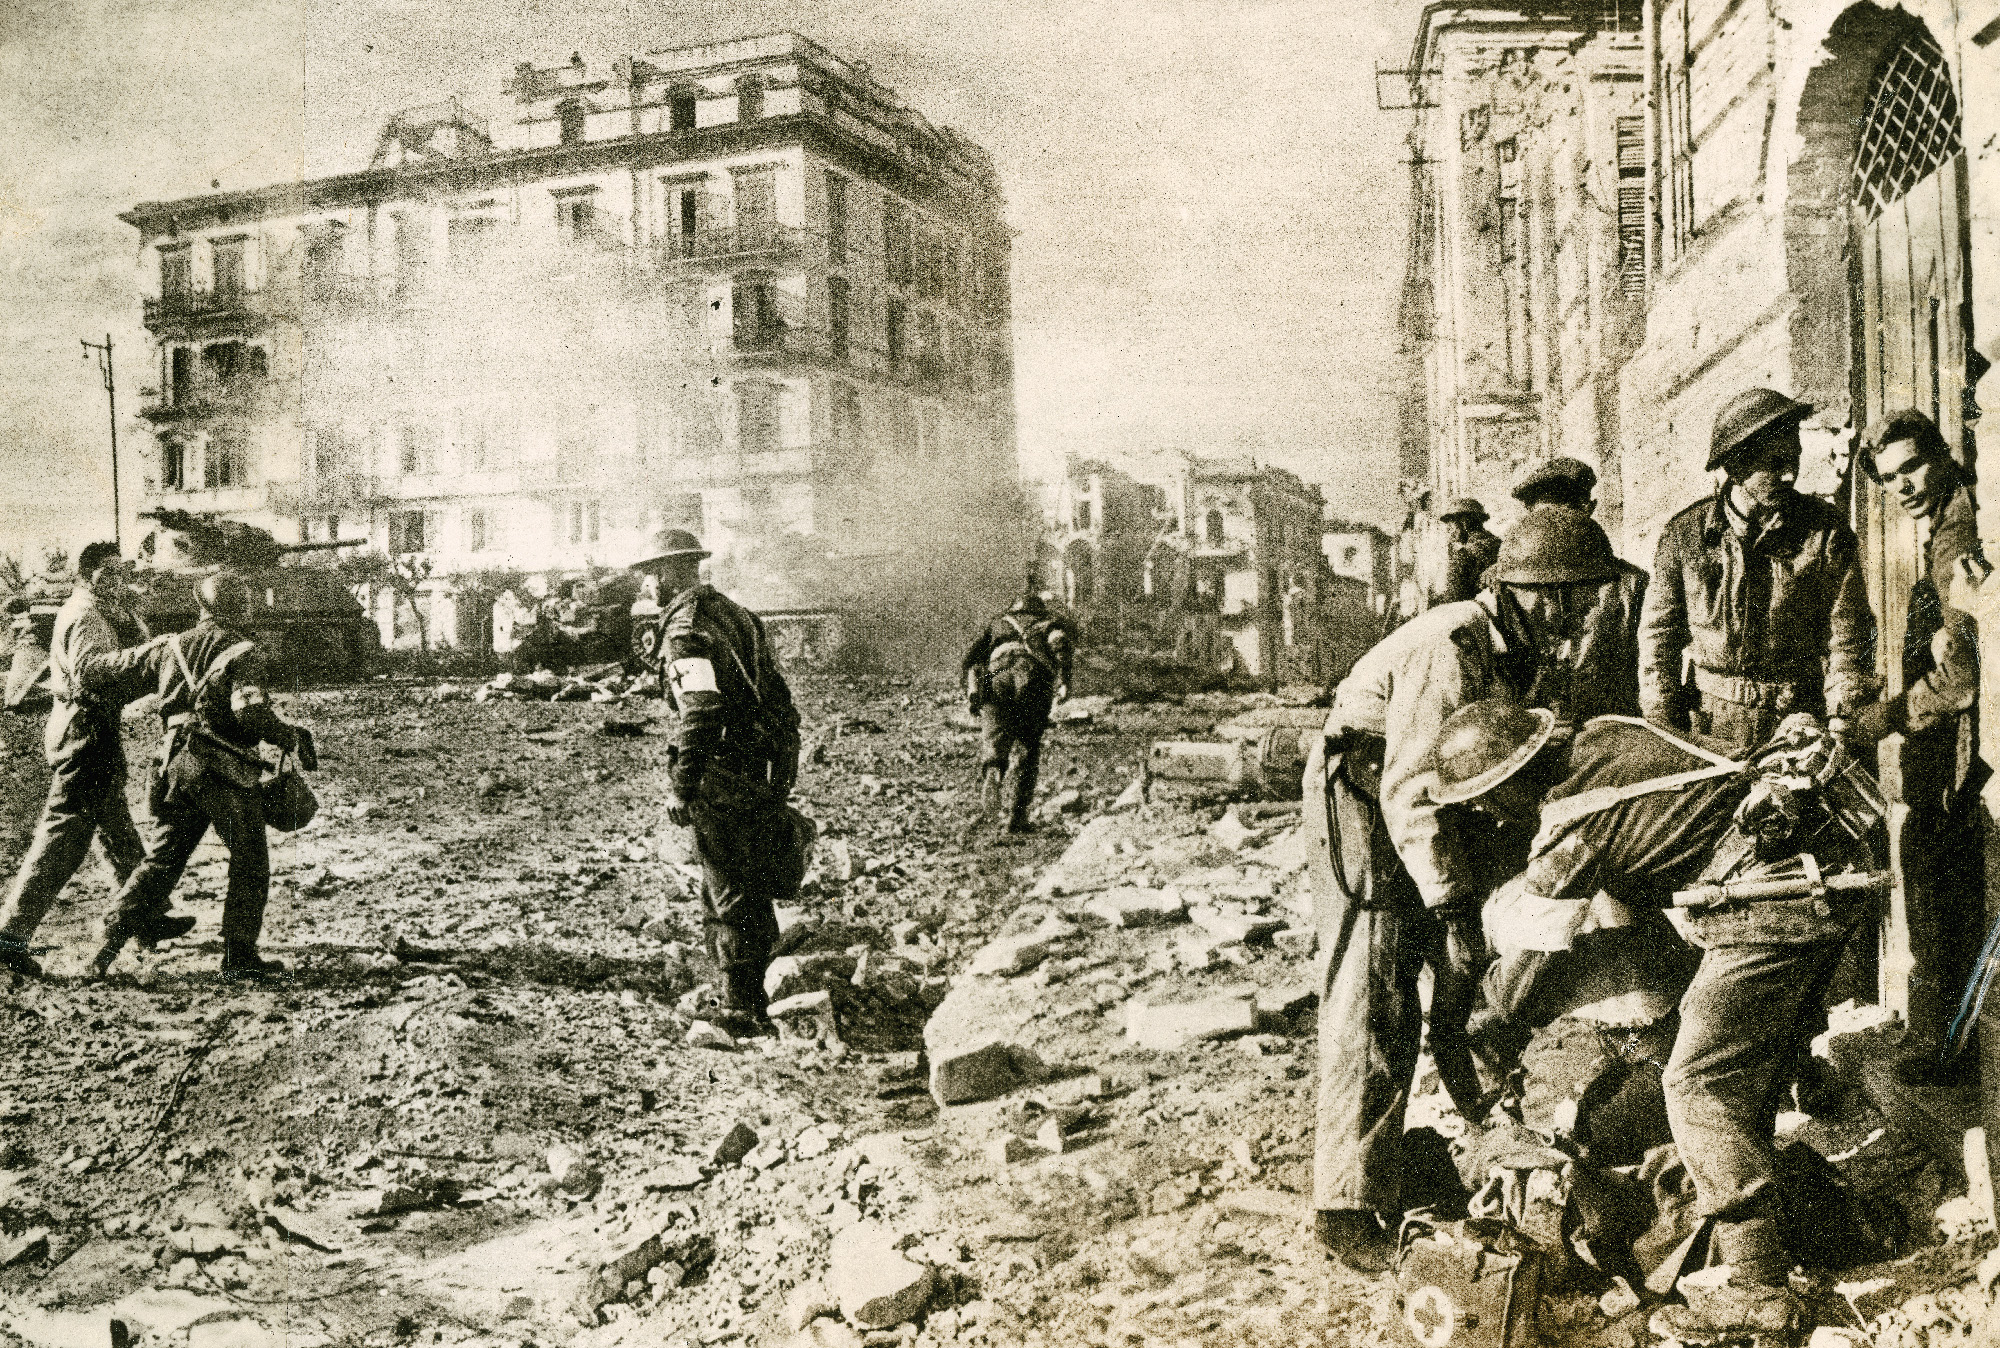 Christmas 1943: Dead Horse Square, Ortona, Italy. So named for the principal landmark – a horse that had been killed early in the battle – this was the site of a desperate battle to dislodge the enemy from a church and a school nearby. This is one of the very few combat photos in our collection. This scene was being swept with sniper fire when the photo was taken. In the foreground we see medics treating two wounded men. The wounded man on the left was a tank officer shot by a sniper while in the hatch of his tank. In the centre a medic sprints toward another casualty. The wounded man on the right is an infantryman who was also hit by a sniper, and in the background we see two Sherman Tanks firing at the enemy.